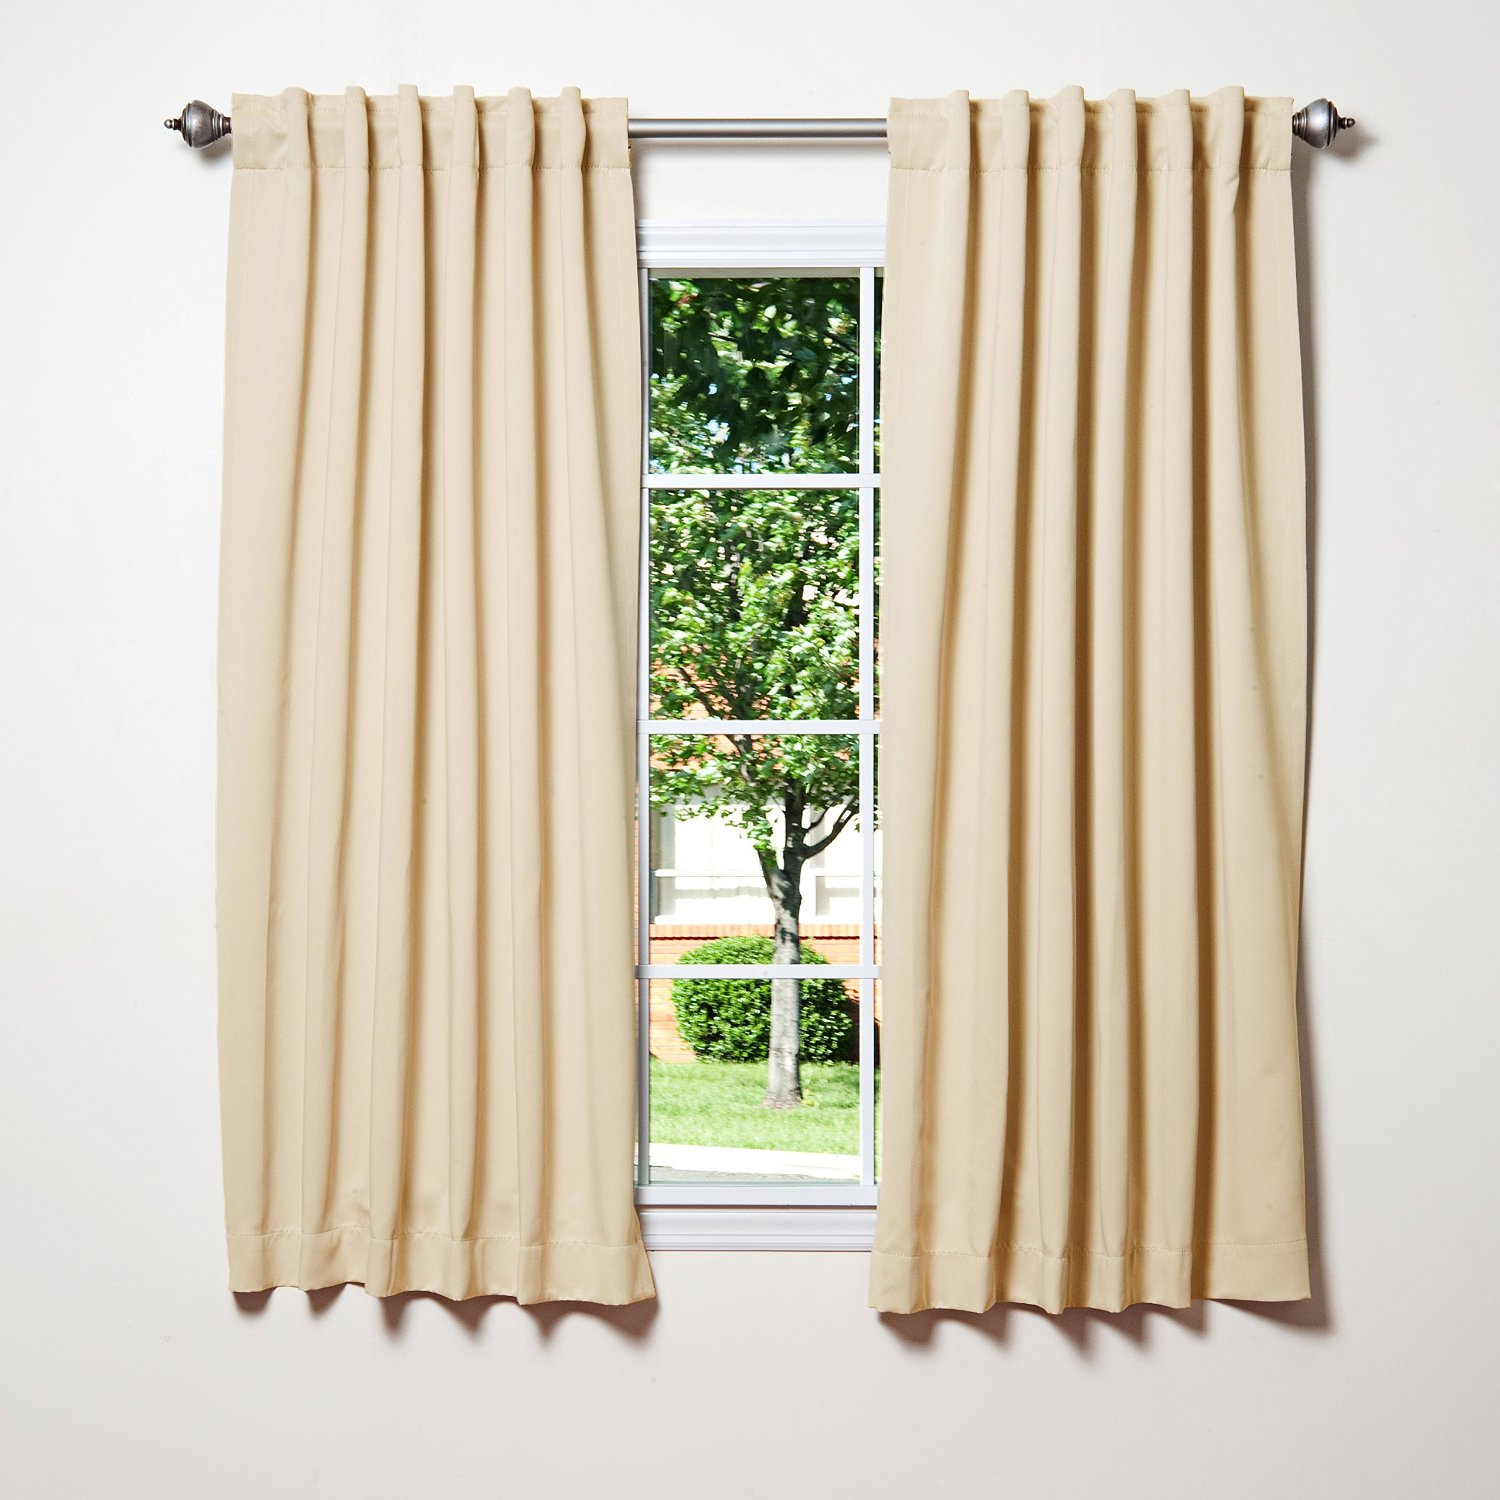 Best Home Fashion Back Tab Thermal Insulated Blackout Curtains – Two Pocket Top Panel Set